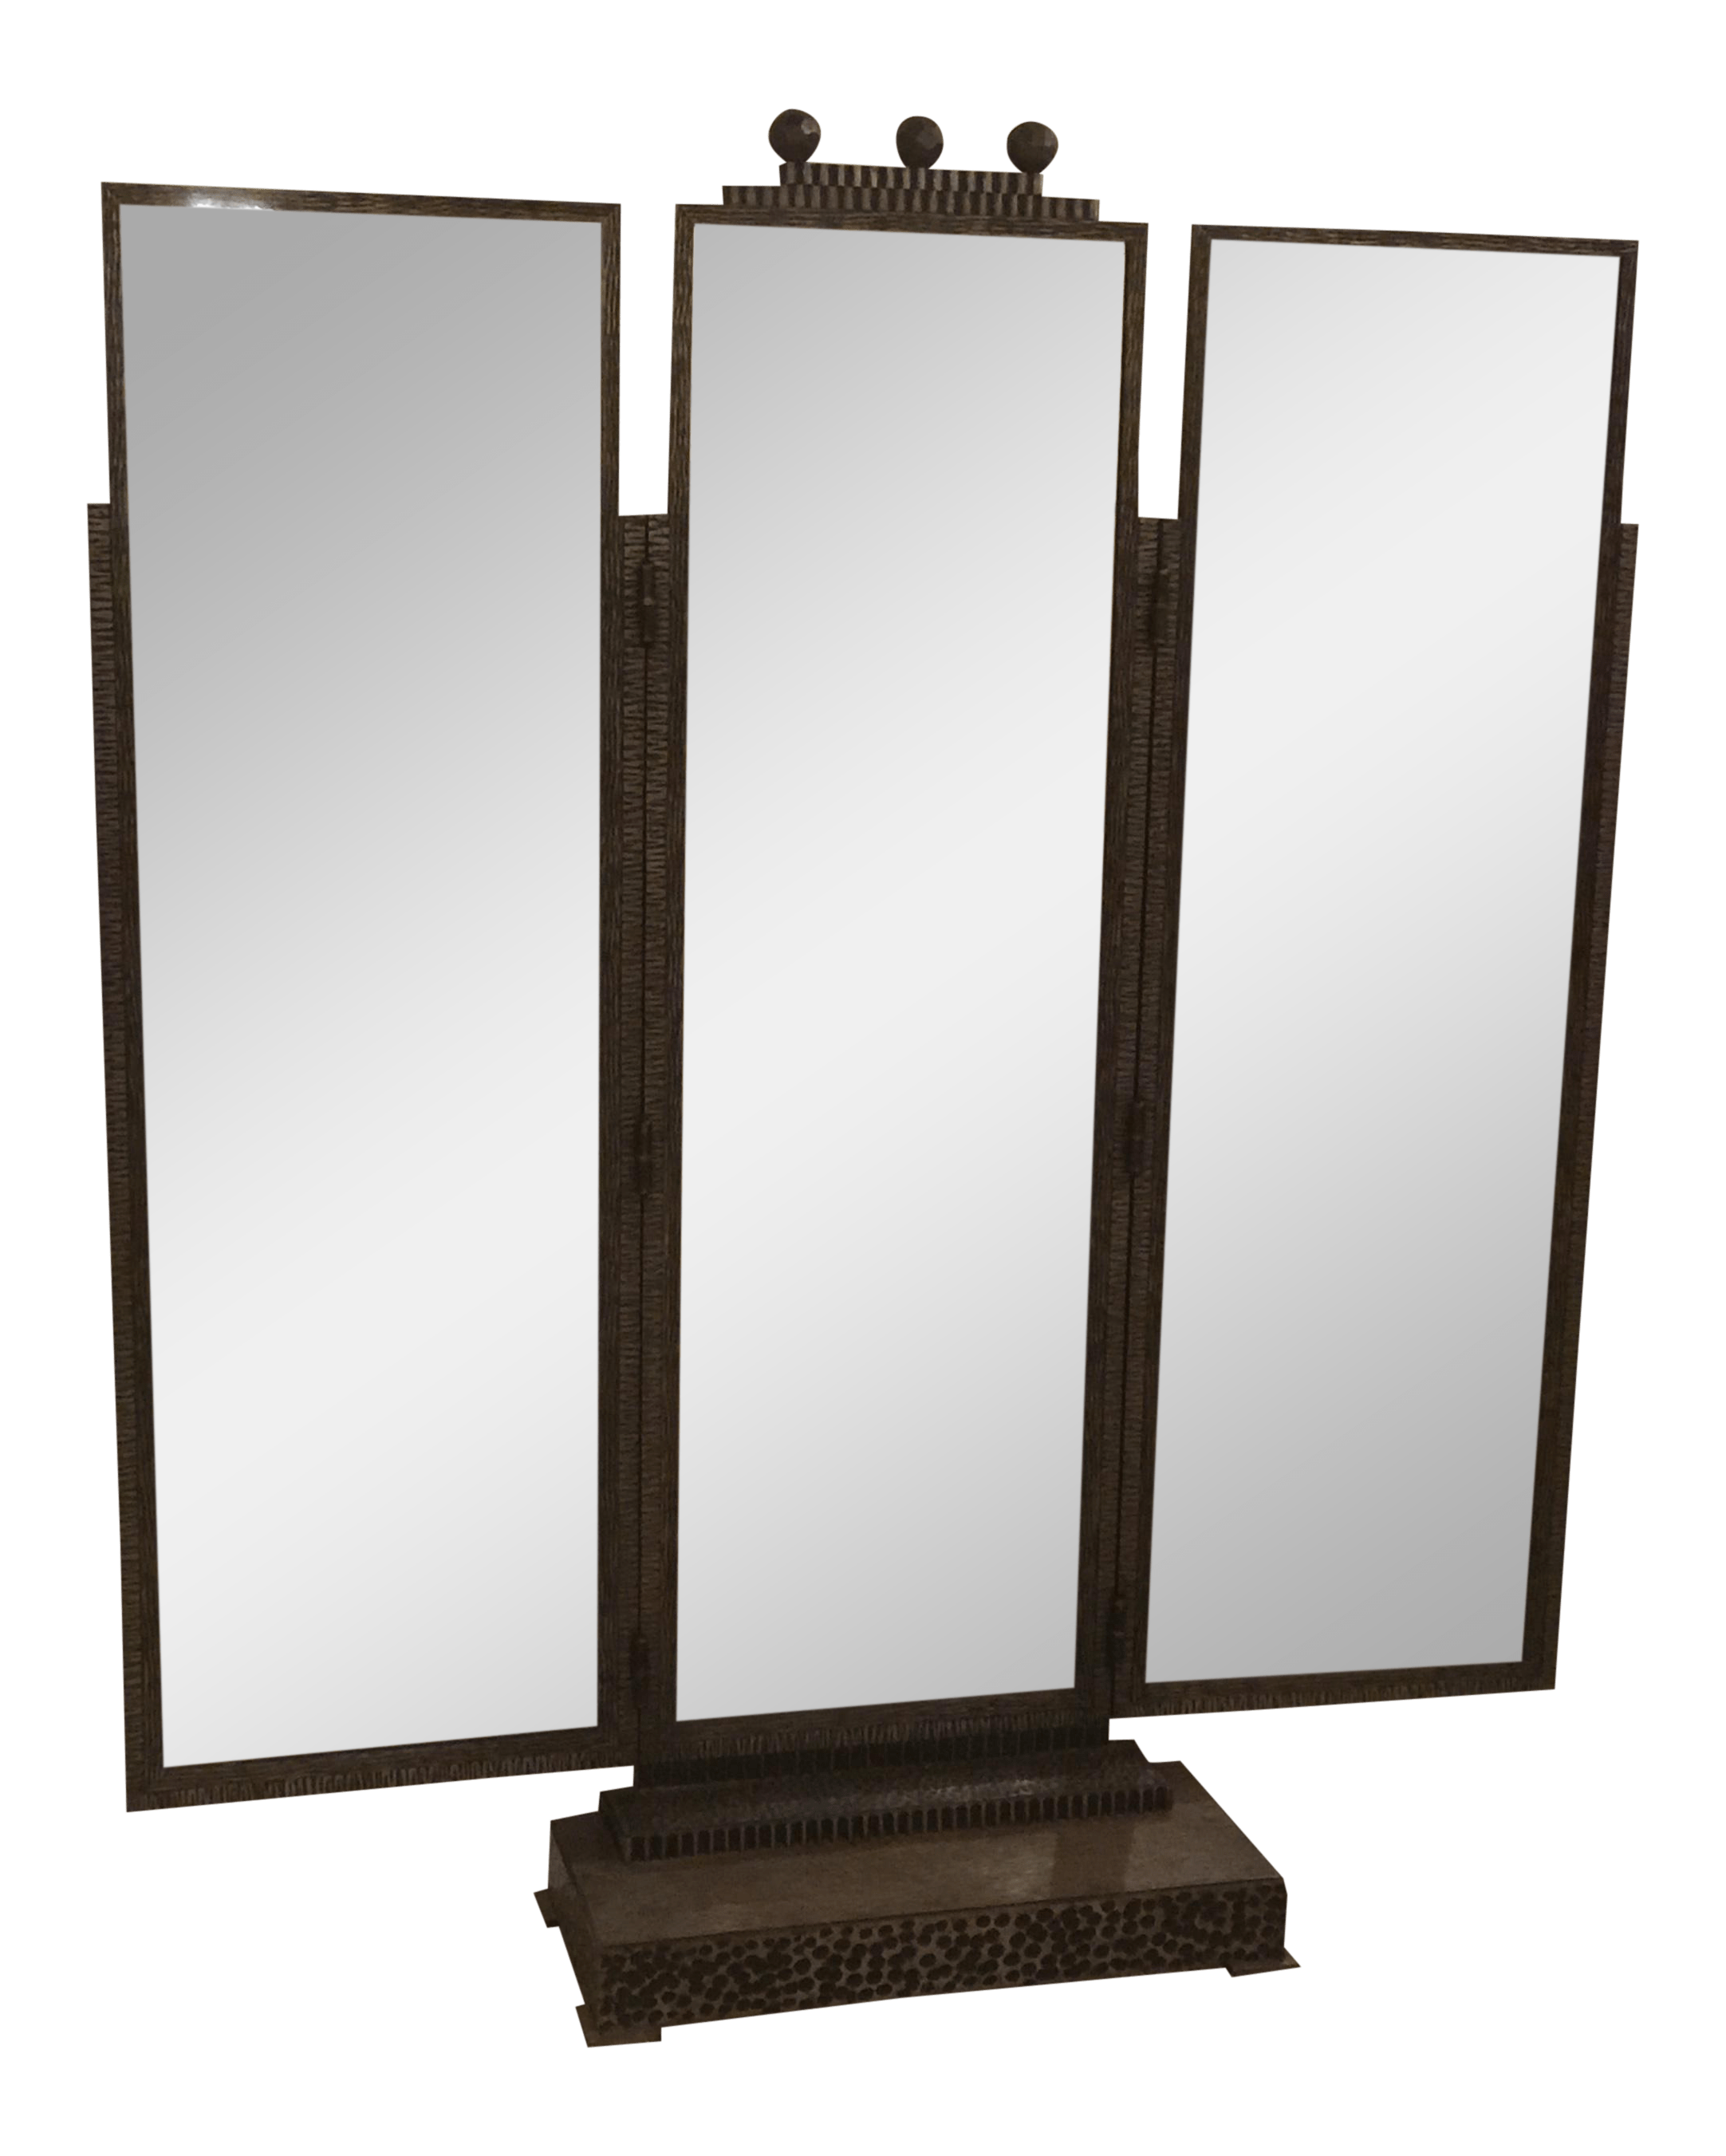 Standing Mirror Beautiful Jules Buoy Art Deco Wrought Iron Trifold Floor Standing Mirror